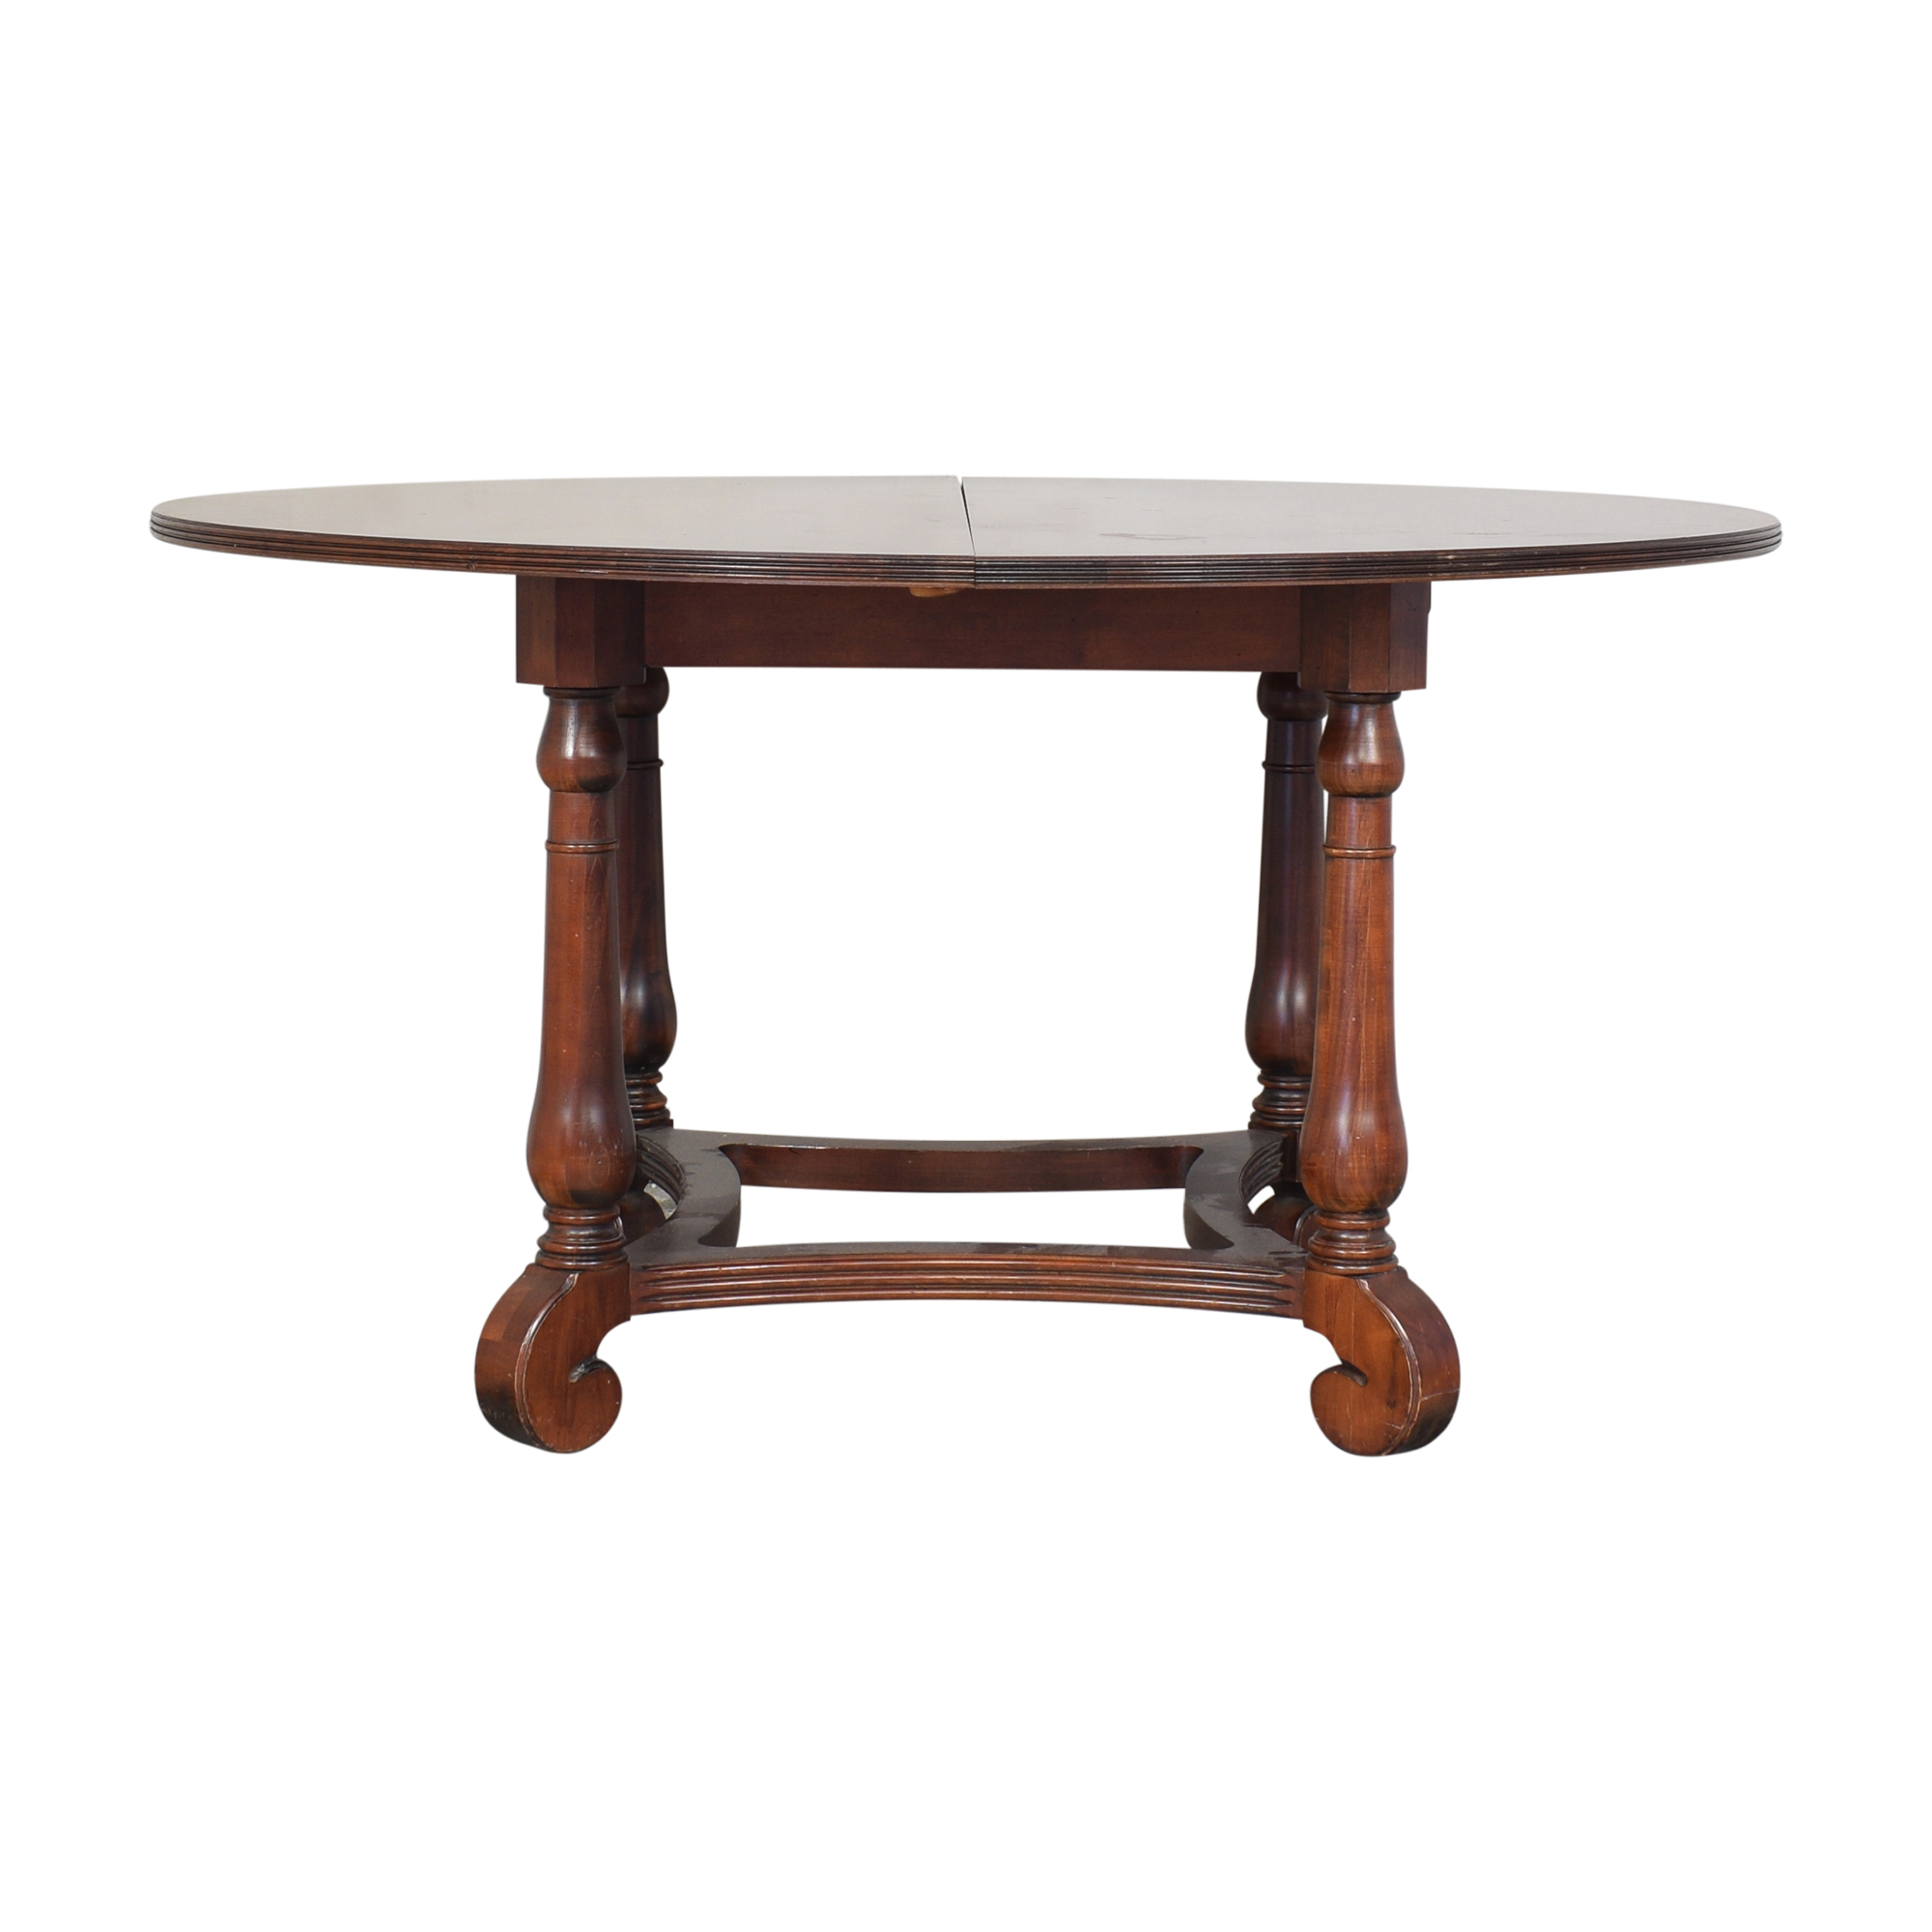 Ethan Allen Ethan Allen British Classics Extendable Dining Table price